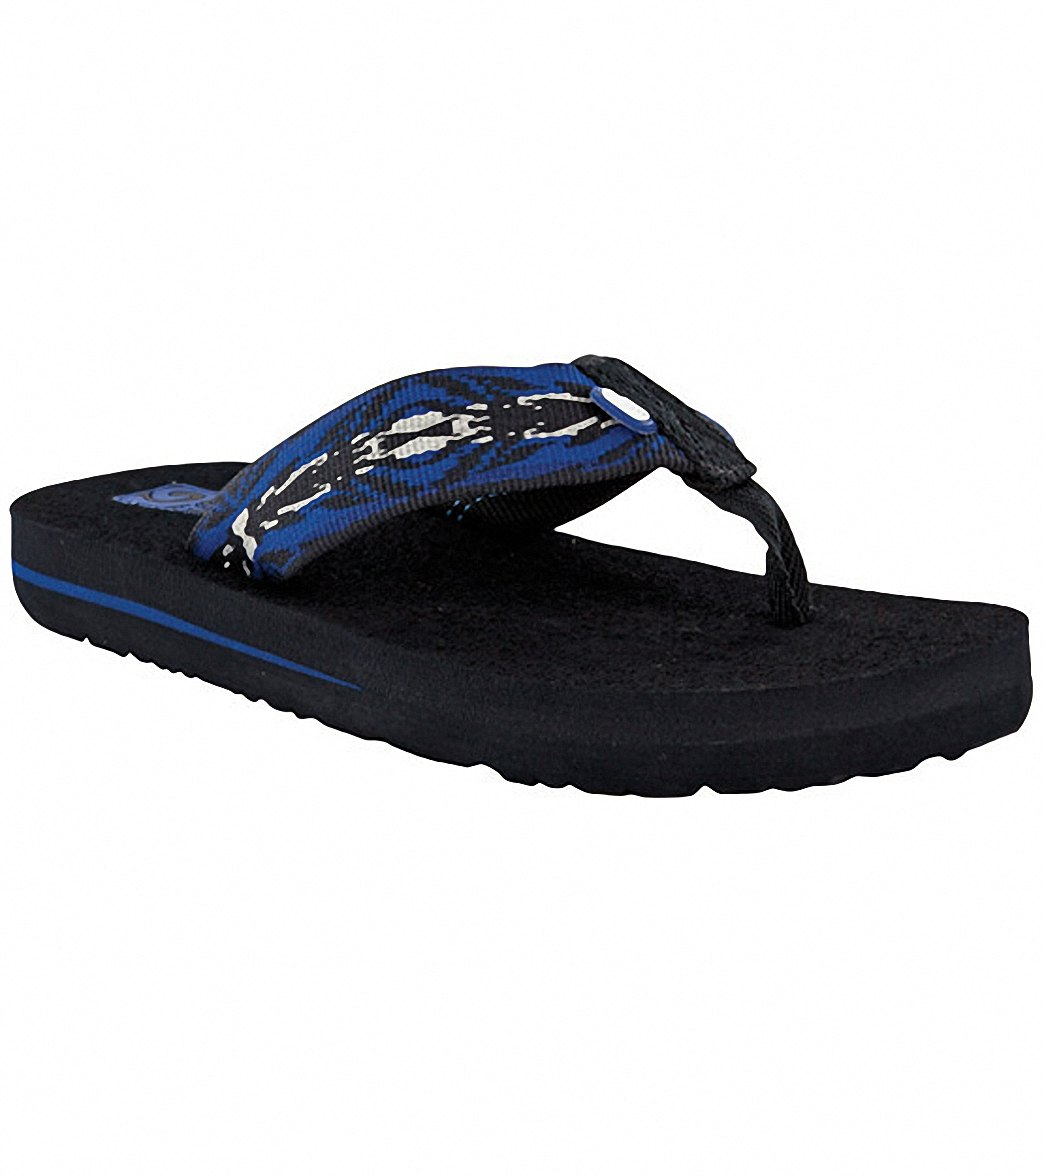 fc7b2988c18b Teva Kids  (8-13) Mush II Flip Flop at SwimOutlet.com